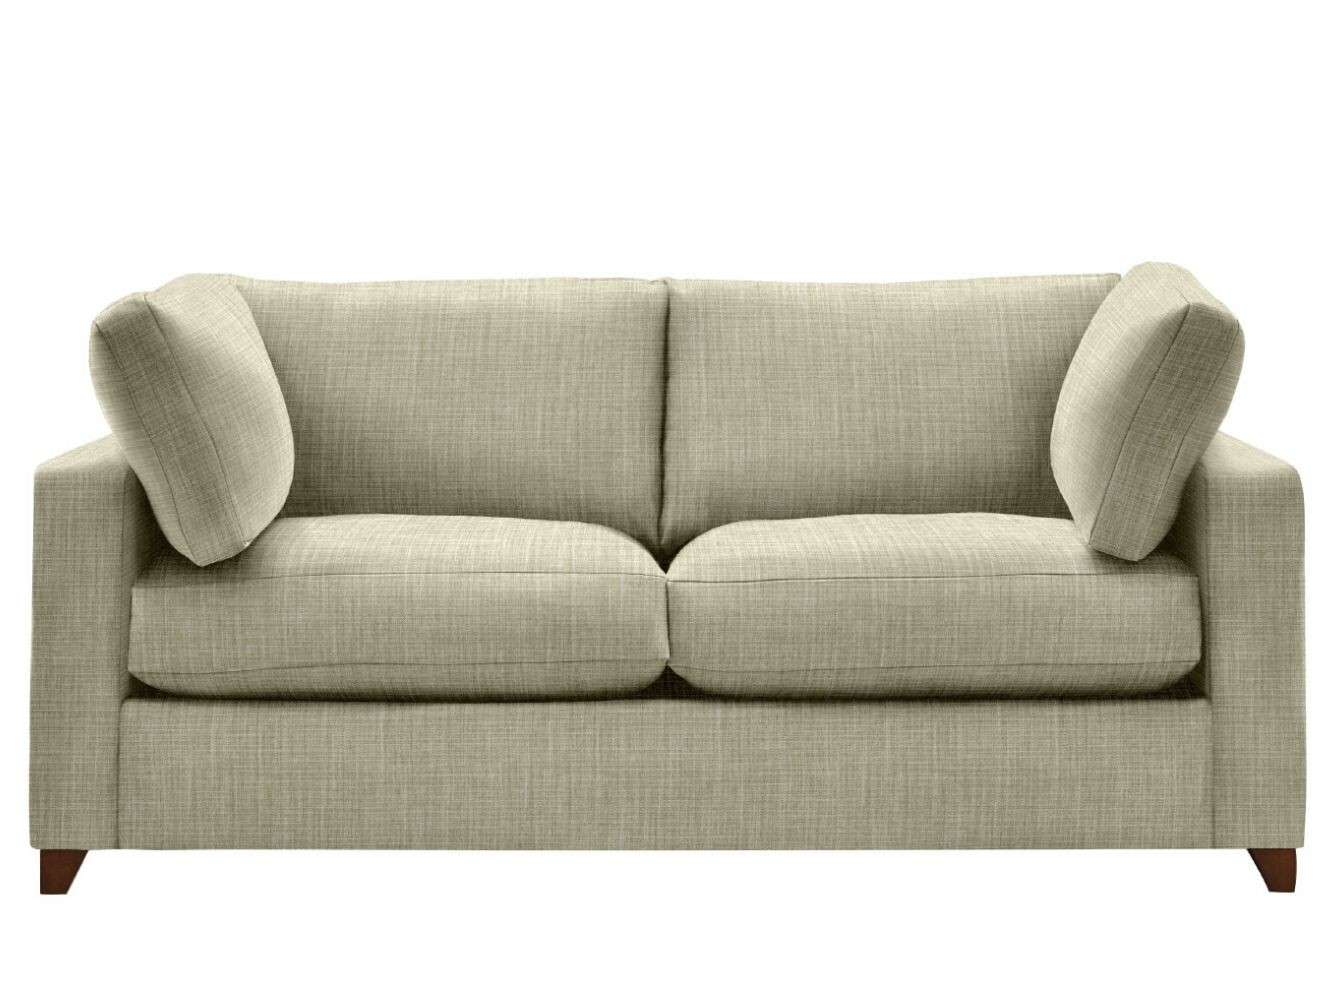 This is how I look in House Linen Vintage Grey with siliconized hollow fibre seat cushions